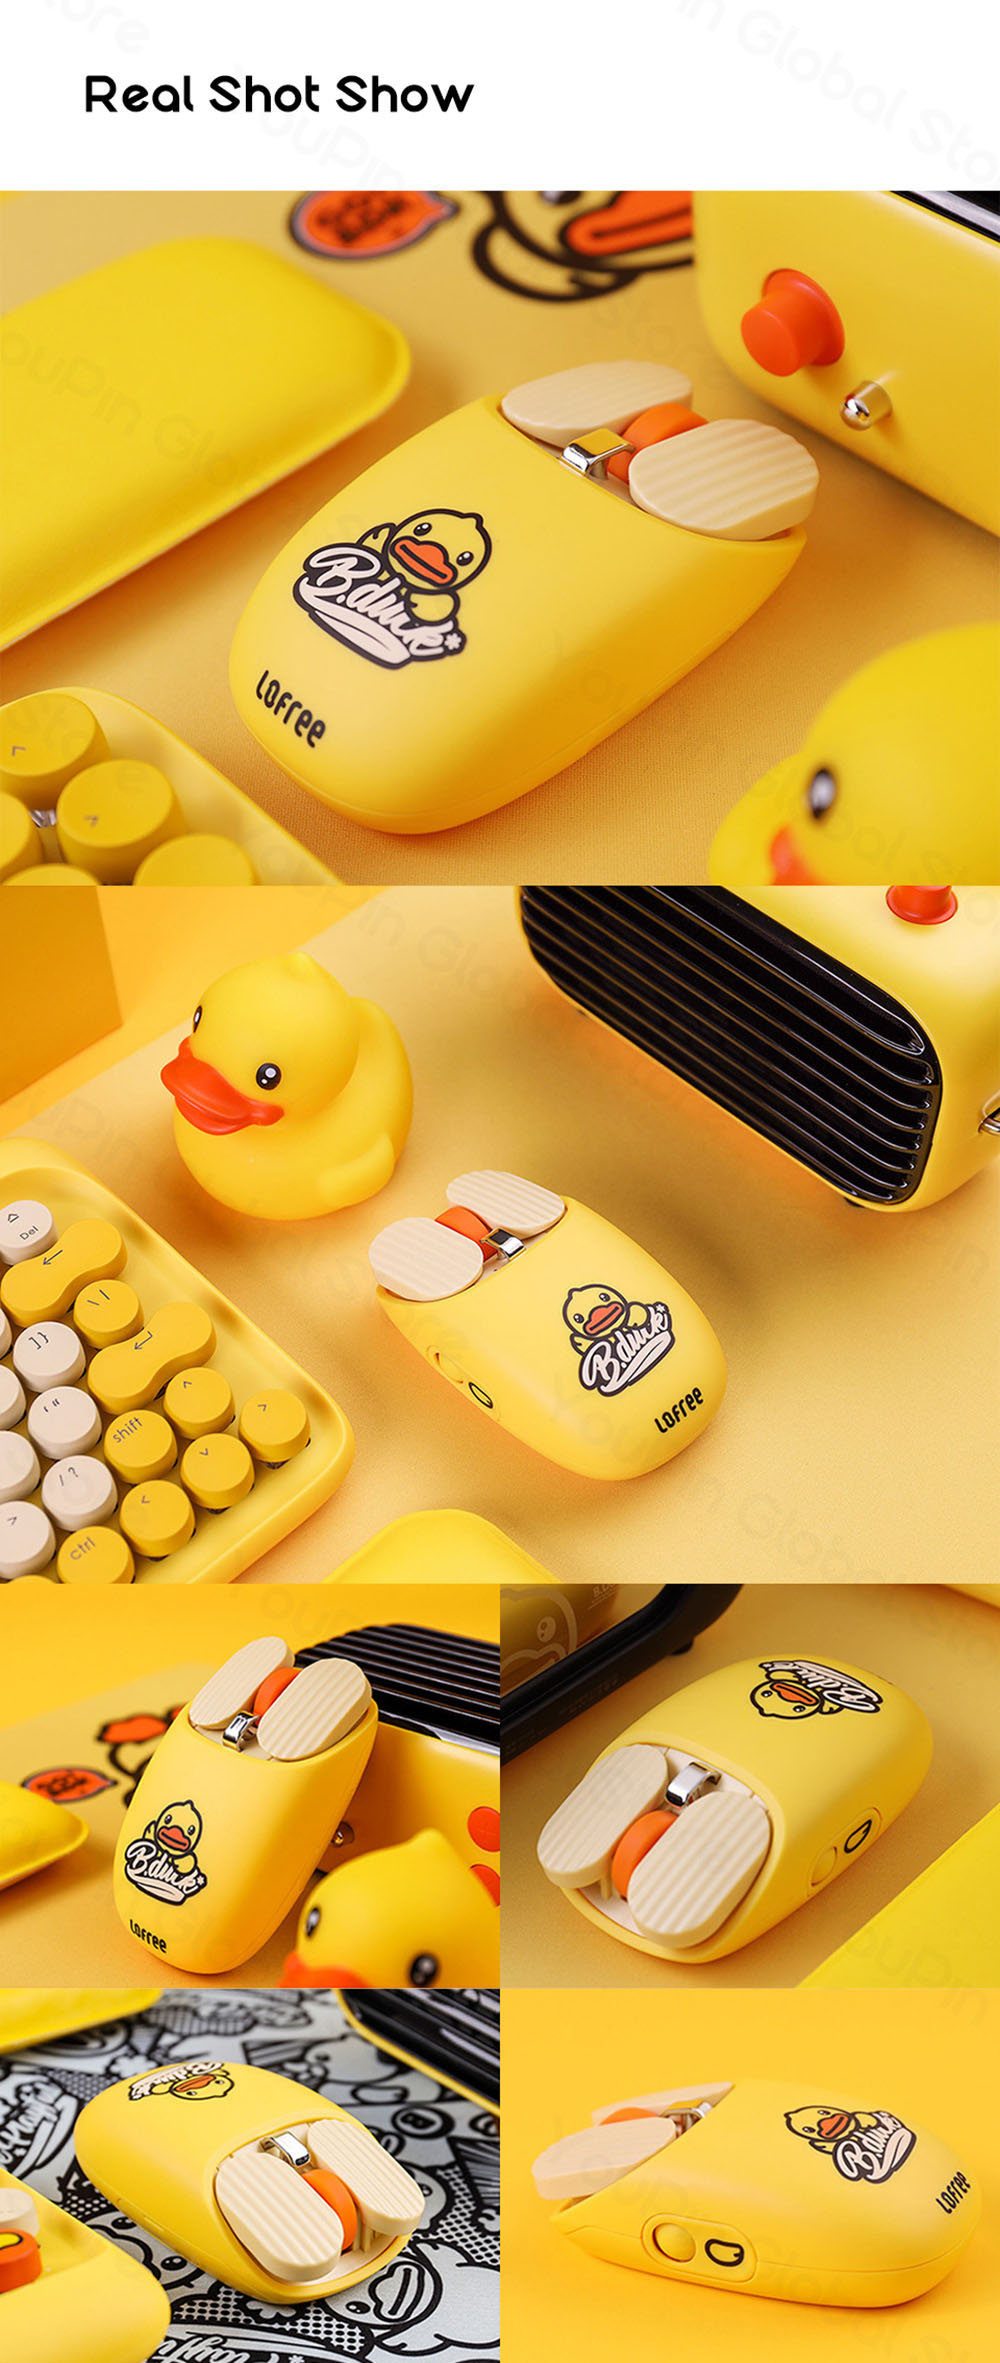 LOFREE Mouse B. Duck Bluetooth Wireless Mouse Dual Mode Connection Multi System Gesture Control Mac Windows Portable from Youpin - Yellow